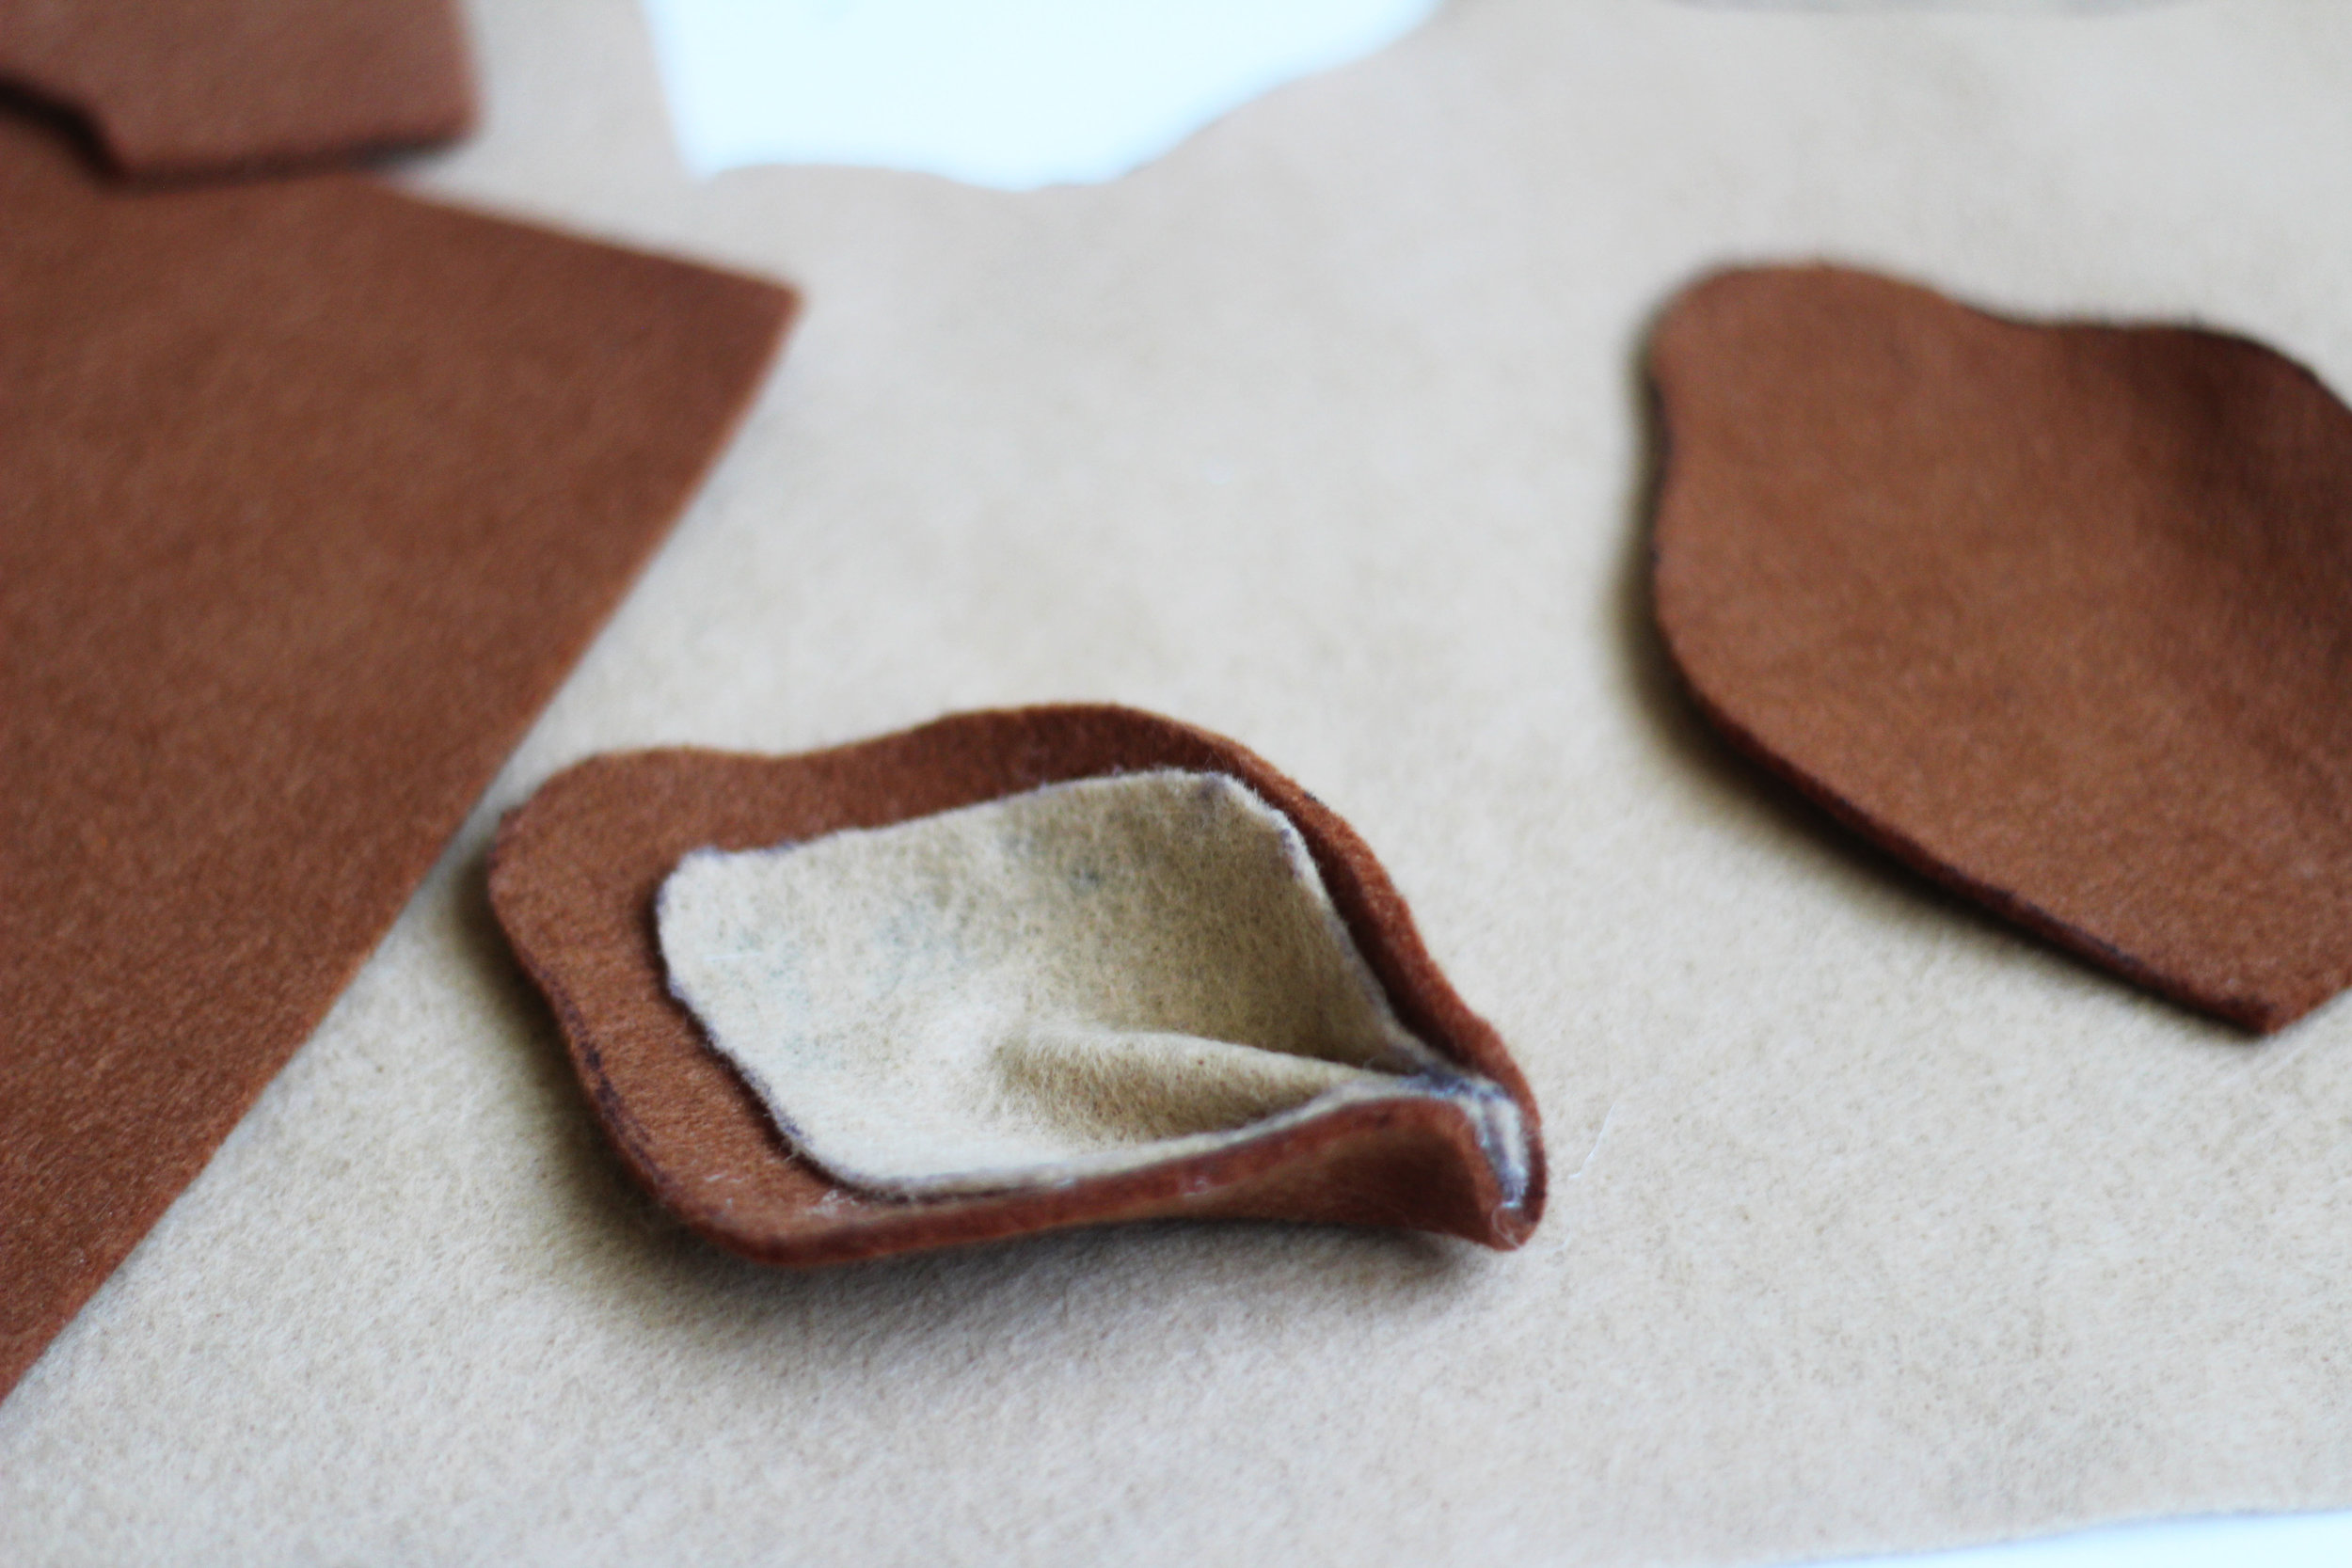 Use felt to create two ears for your headband, then use hot glue to attach them.